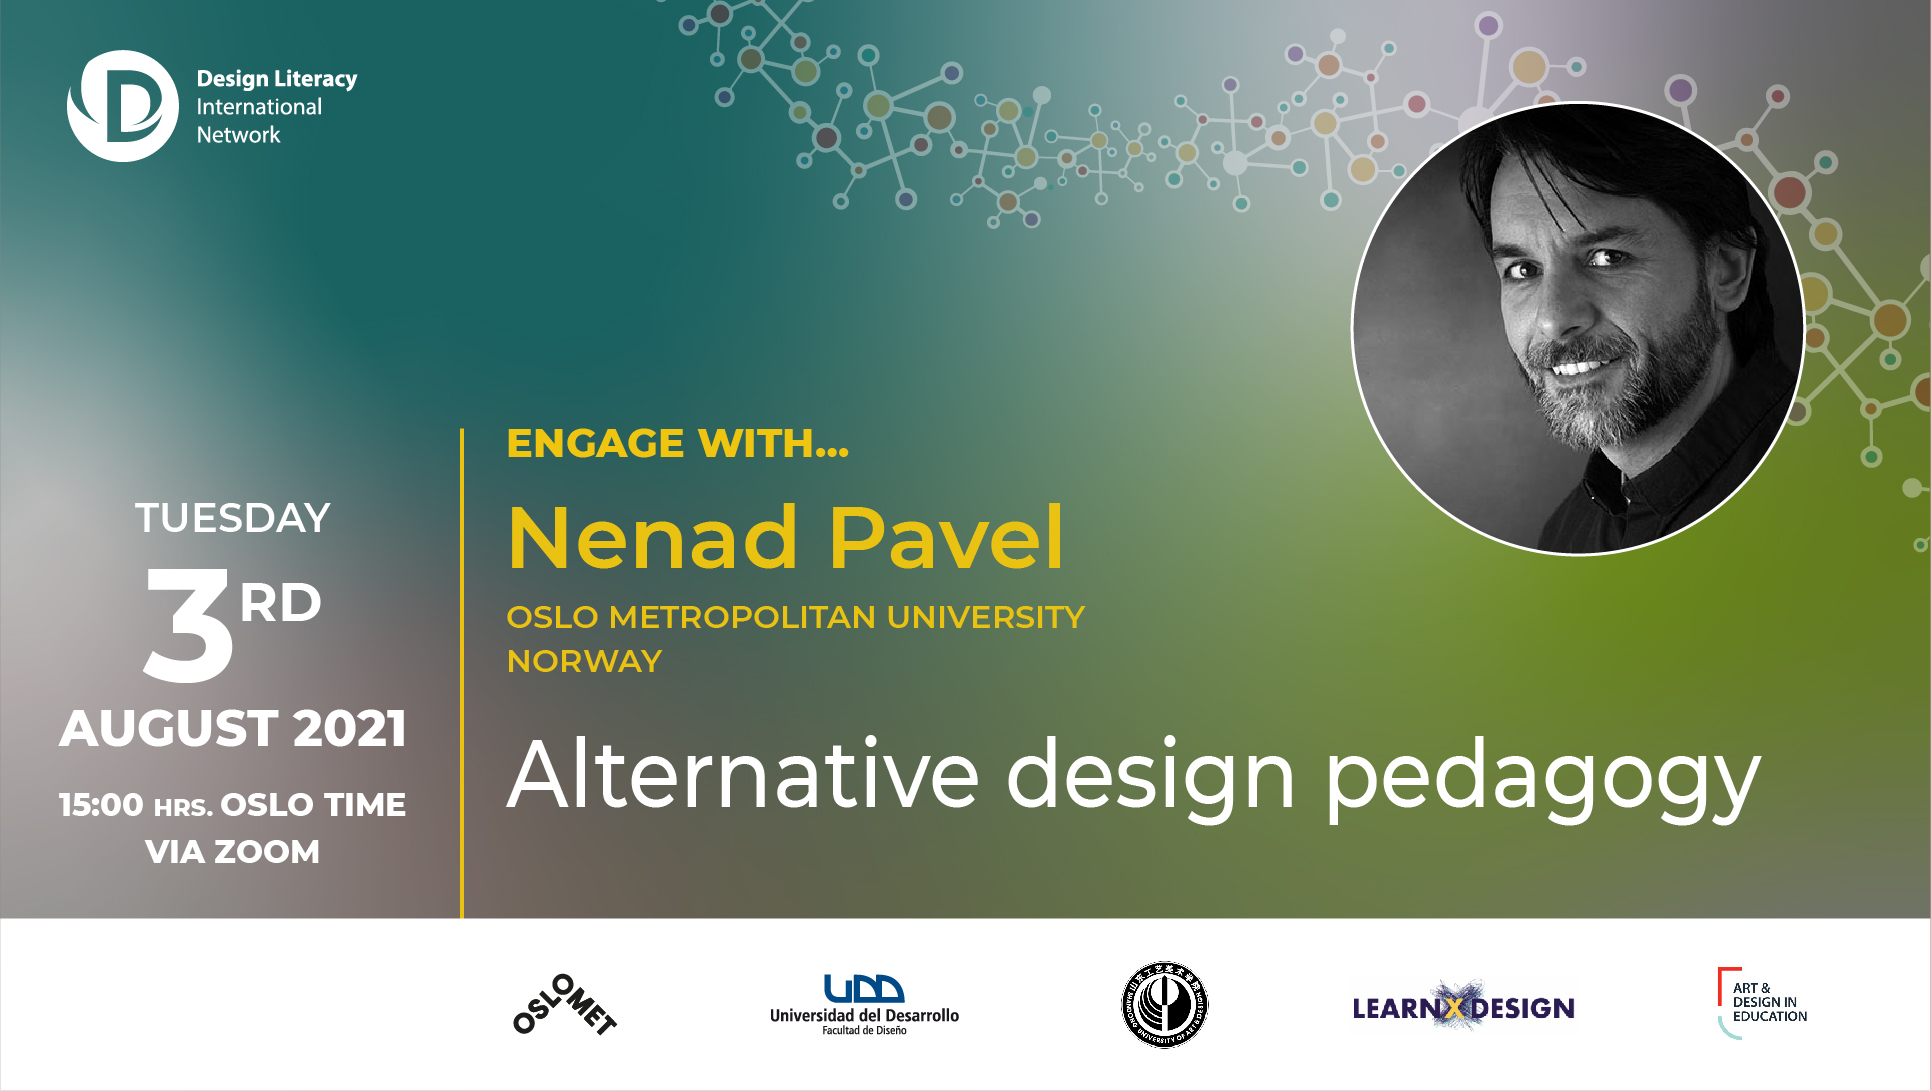 You are currently viewing Engage with Nenad Pavel | Design Literacy International Network event